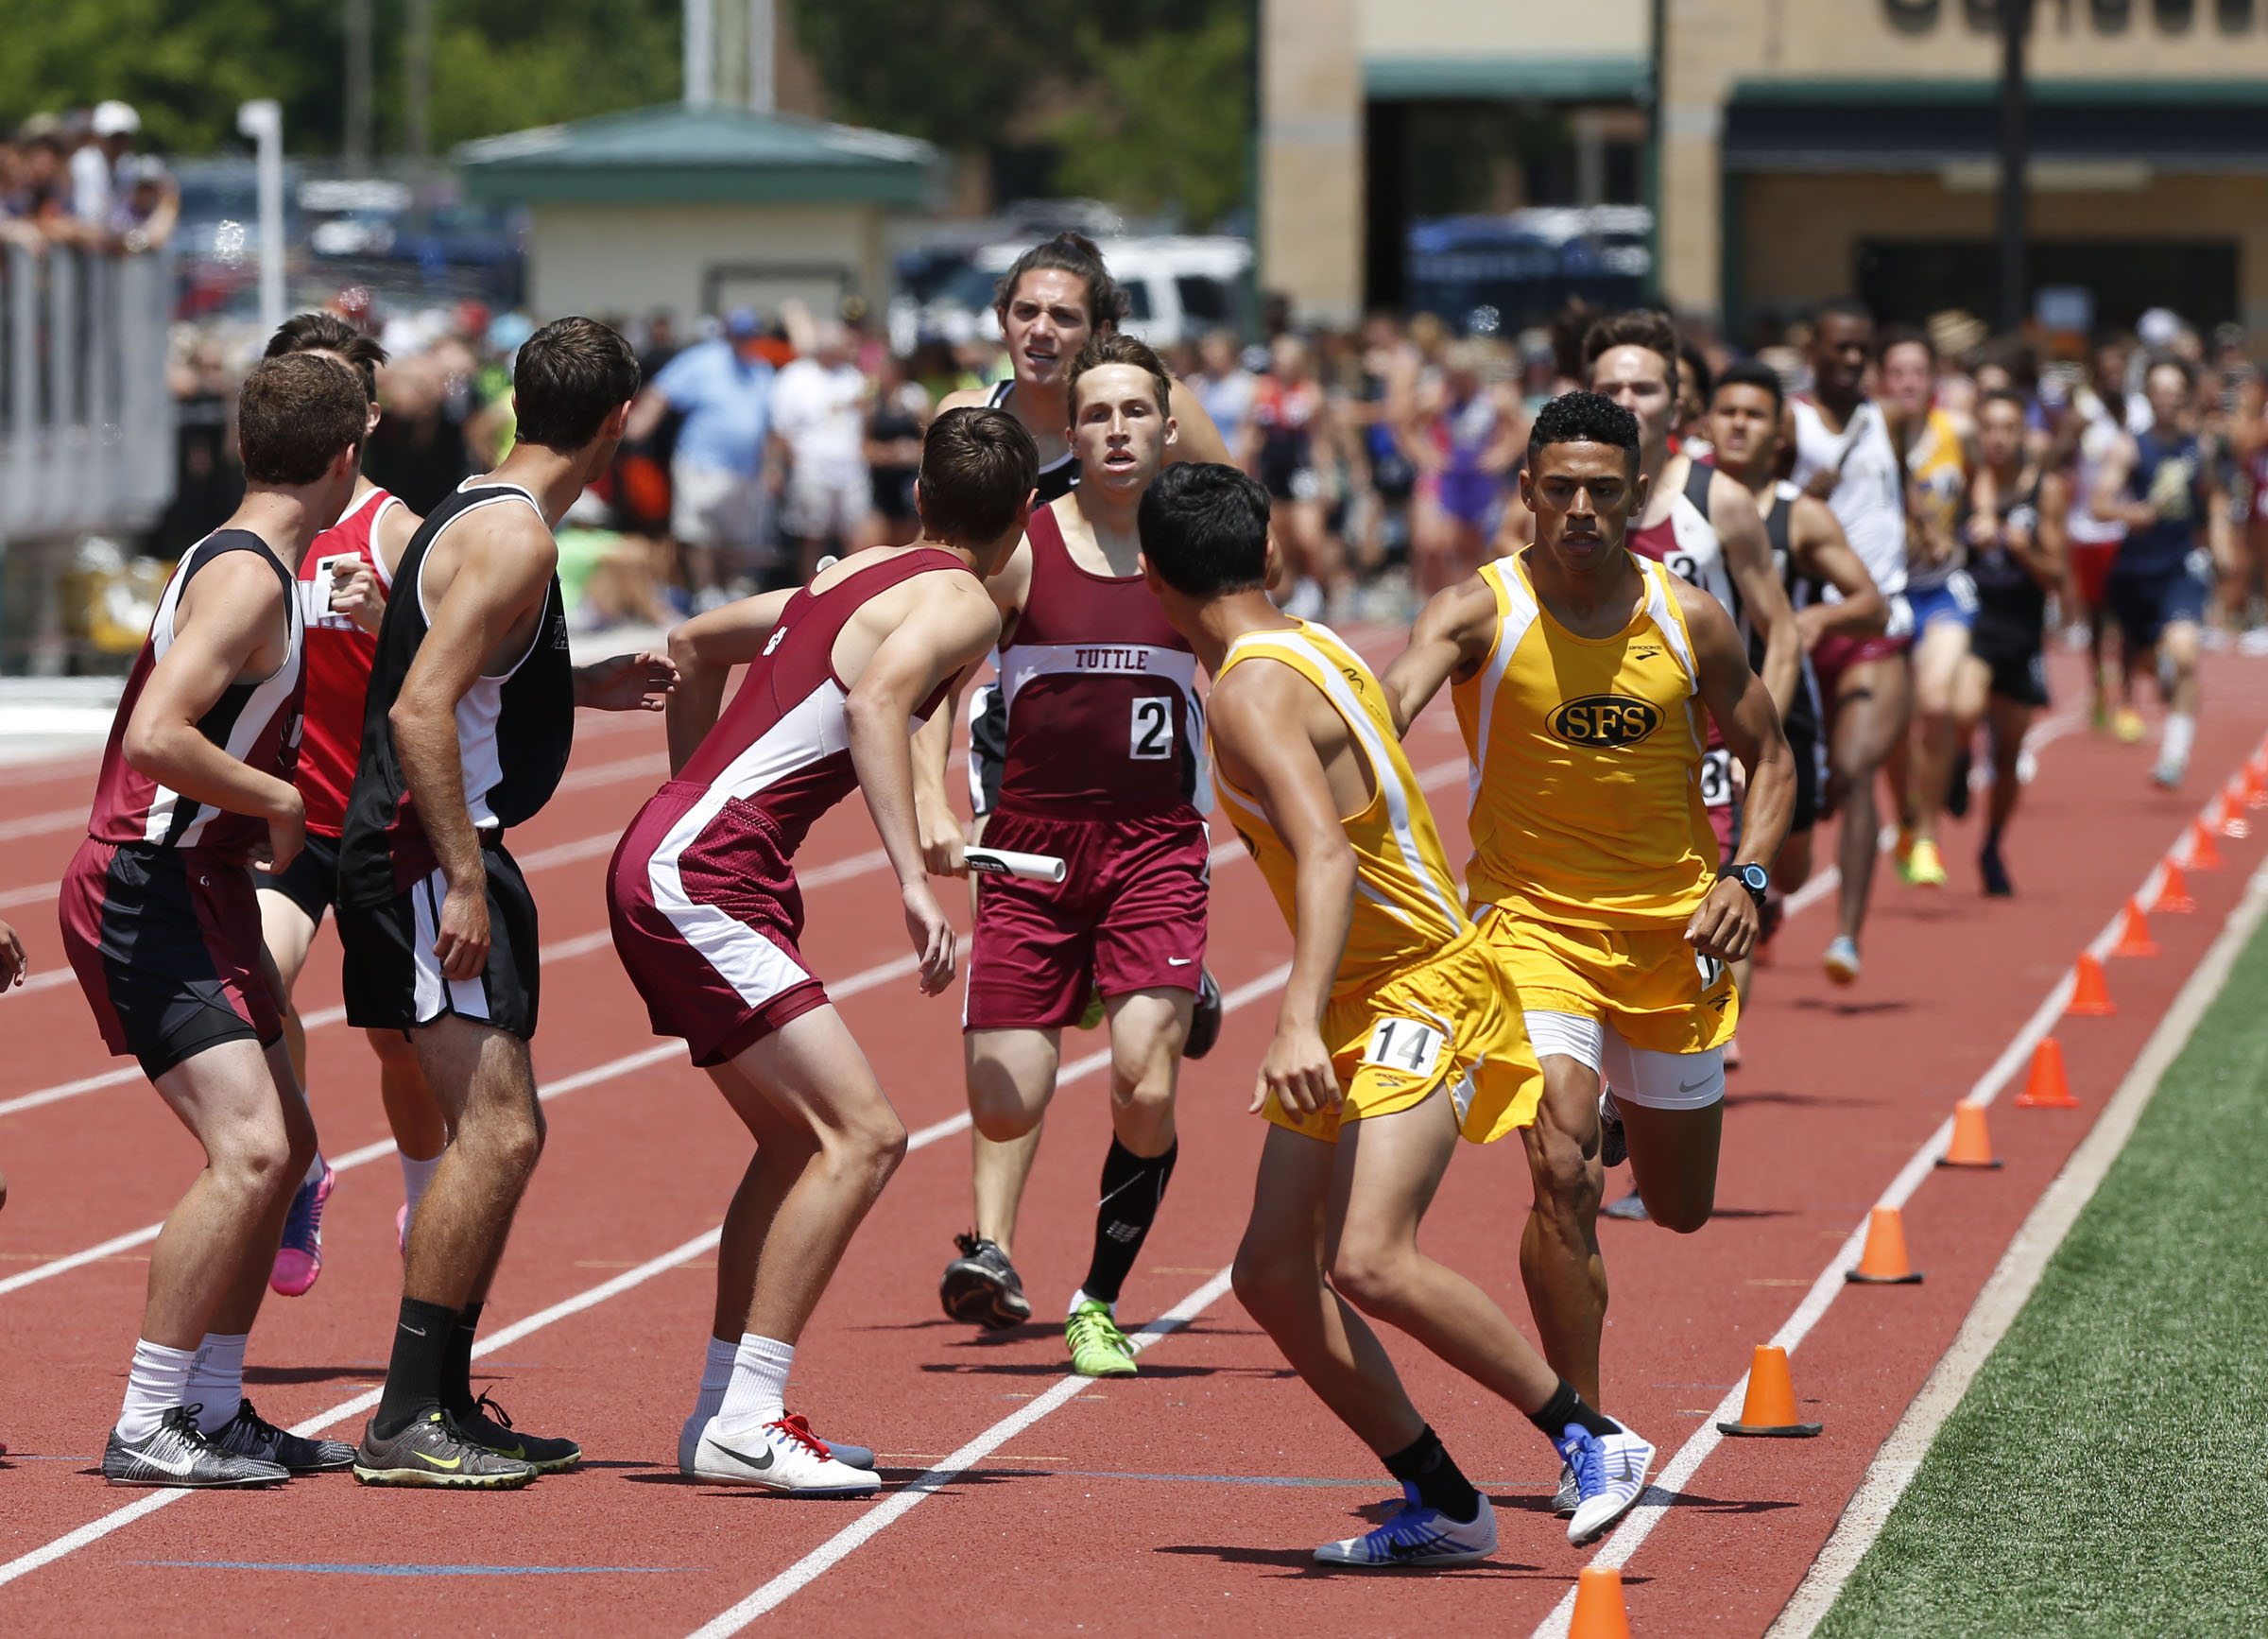 grpa state class a track meet